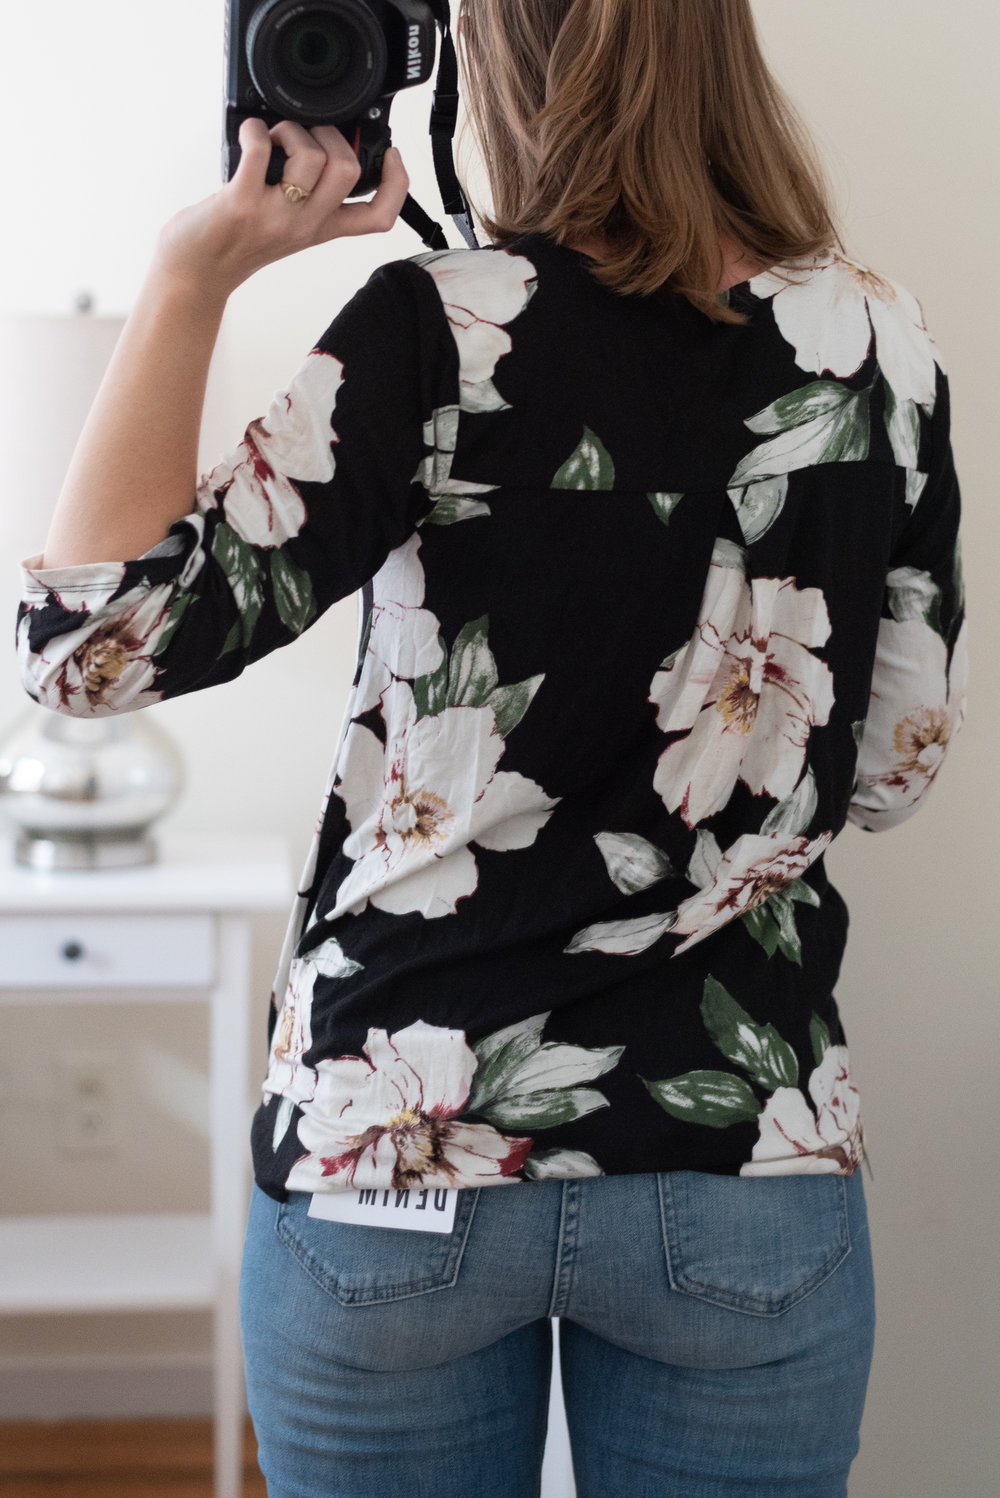 Becca Floral V-Neck Surplice Blouse - Size S - Back View